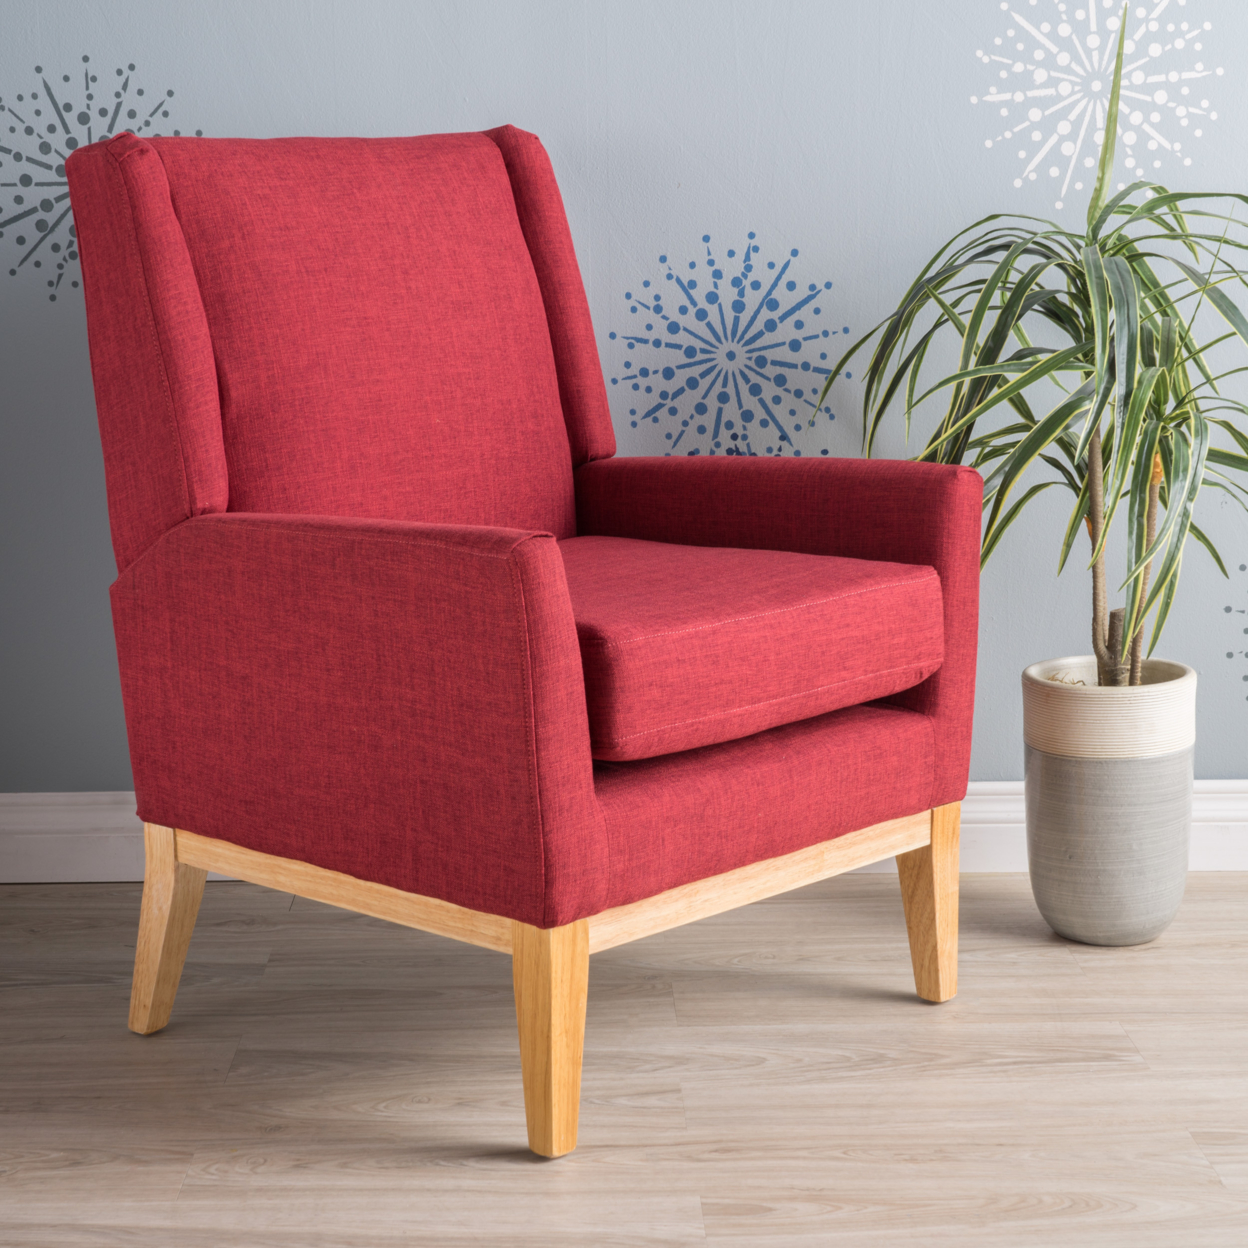 Maeve Red Fabric Accent Chair anso contemporary teal color fabric accent chair